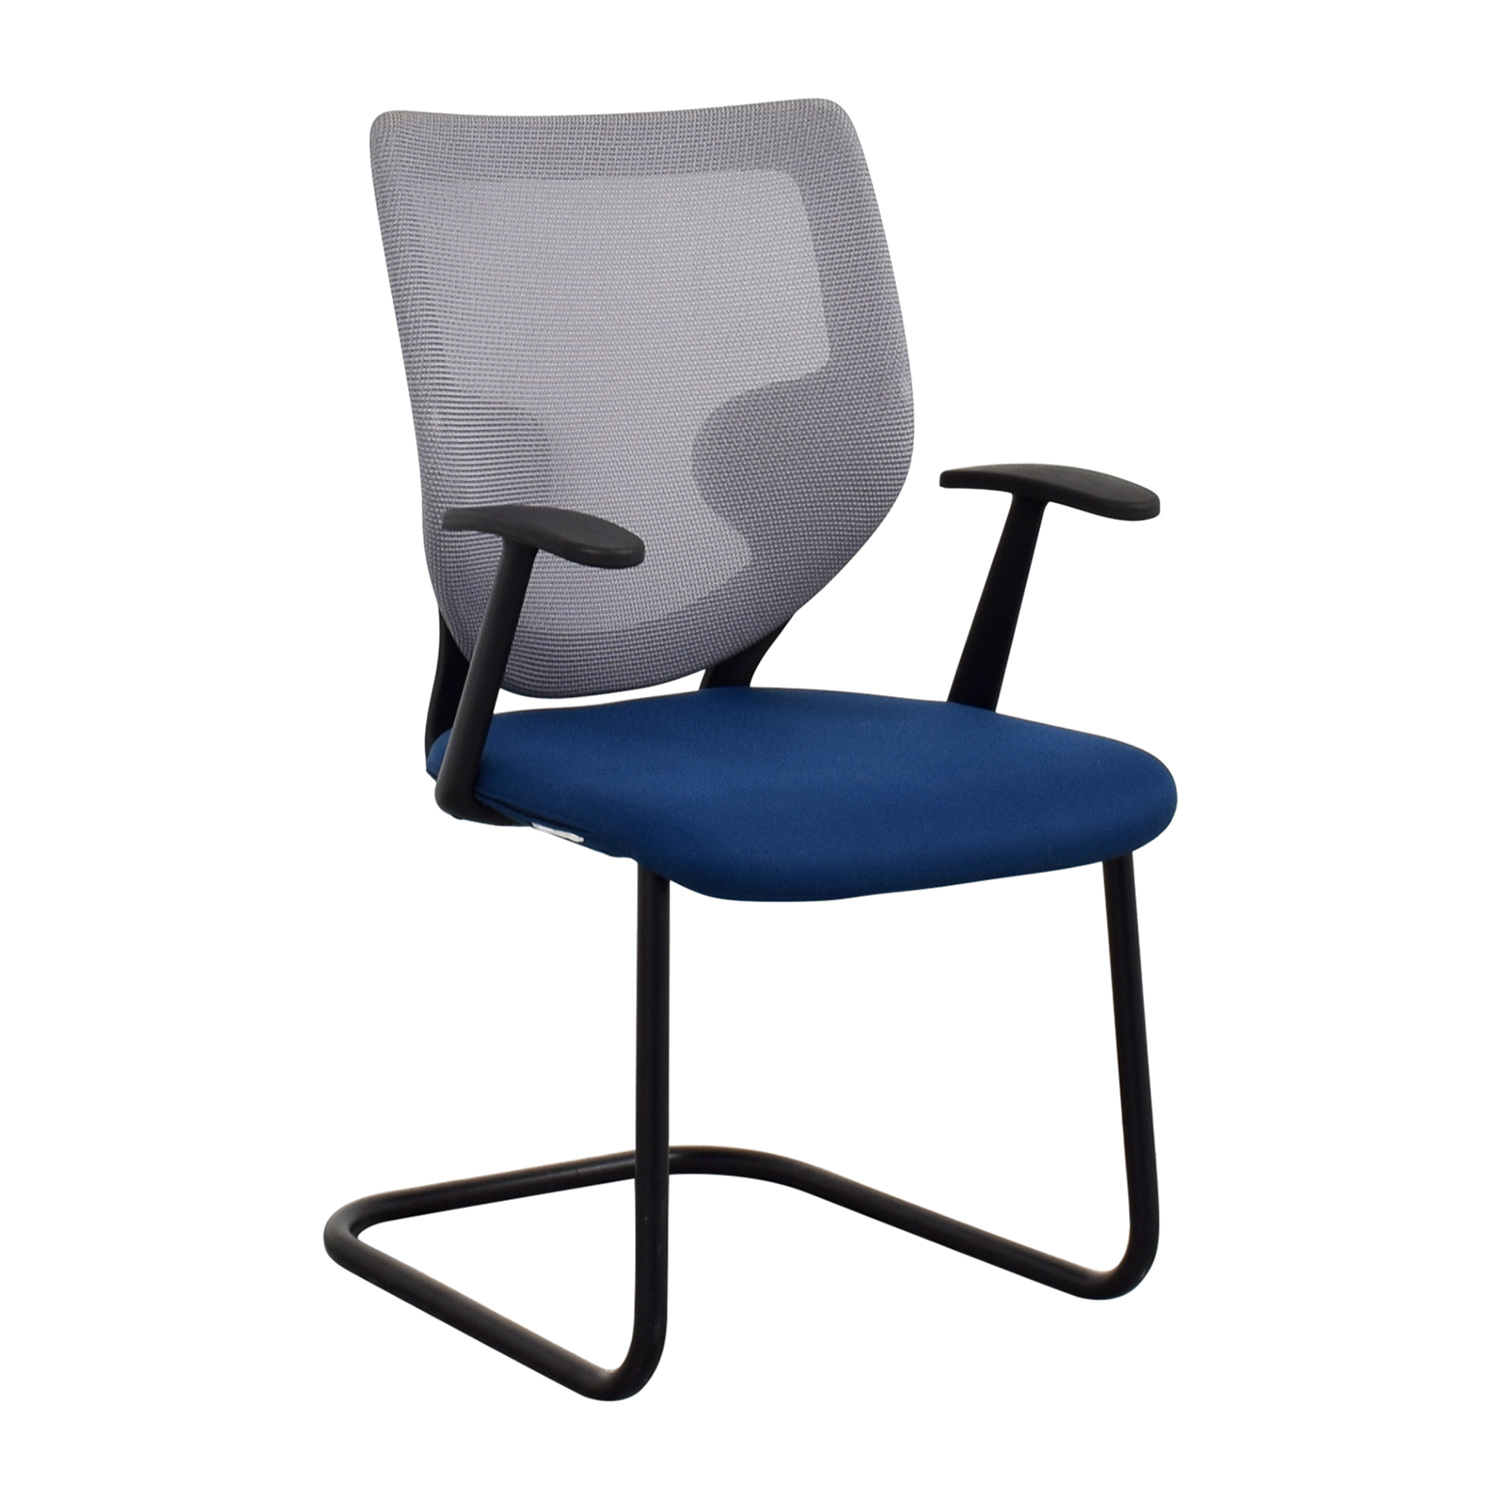 Tremendous 90 Off Keilhauer Keilhauer Blue Mesh Chair Chairs Caraccident5 Cool Chair Designs And Ideas Caraccident5Info